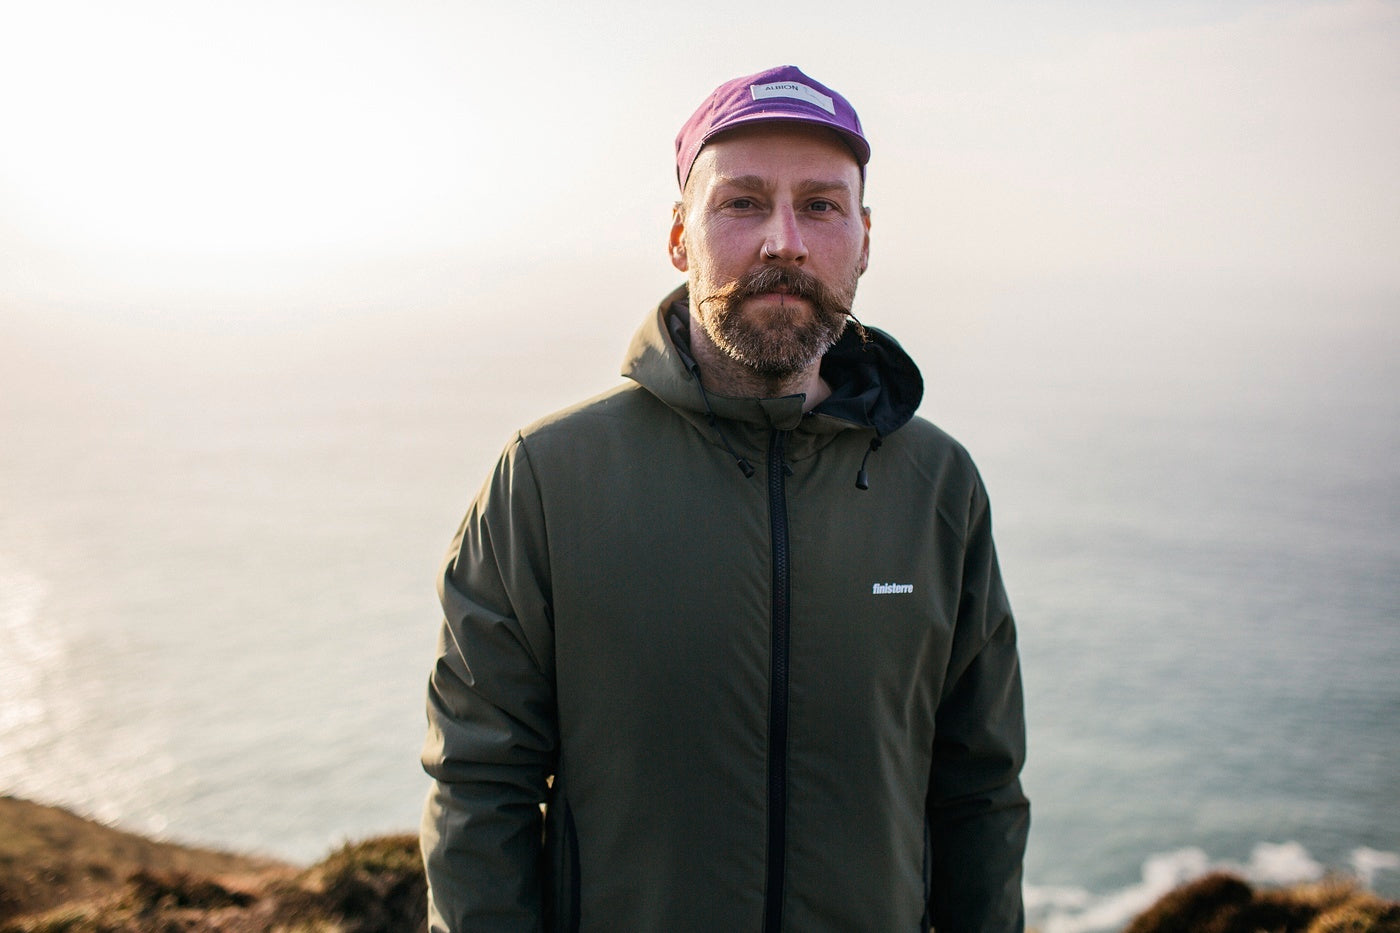 Finisterre Design Lead Todd stands on a cliff with the sea behind him